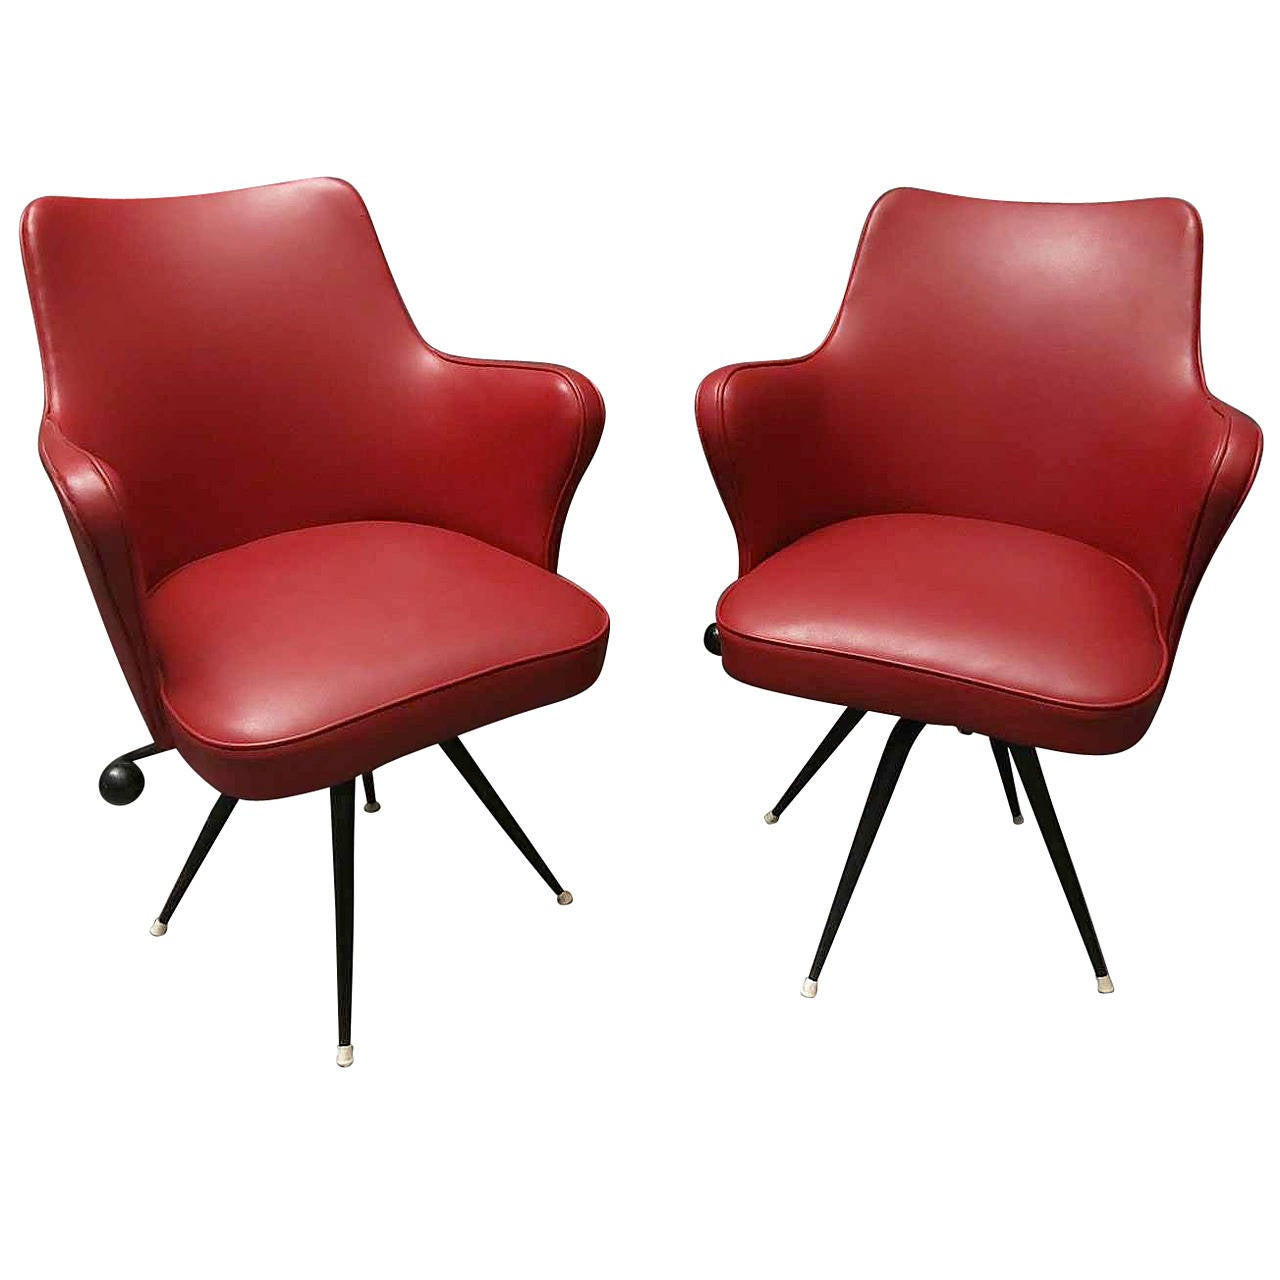 two red office chairs by elettra at 1stdibs